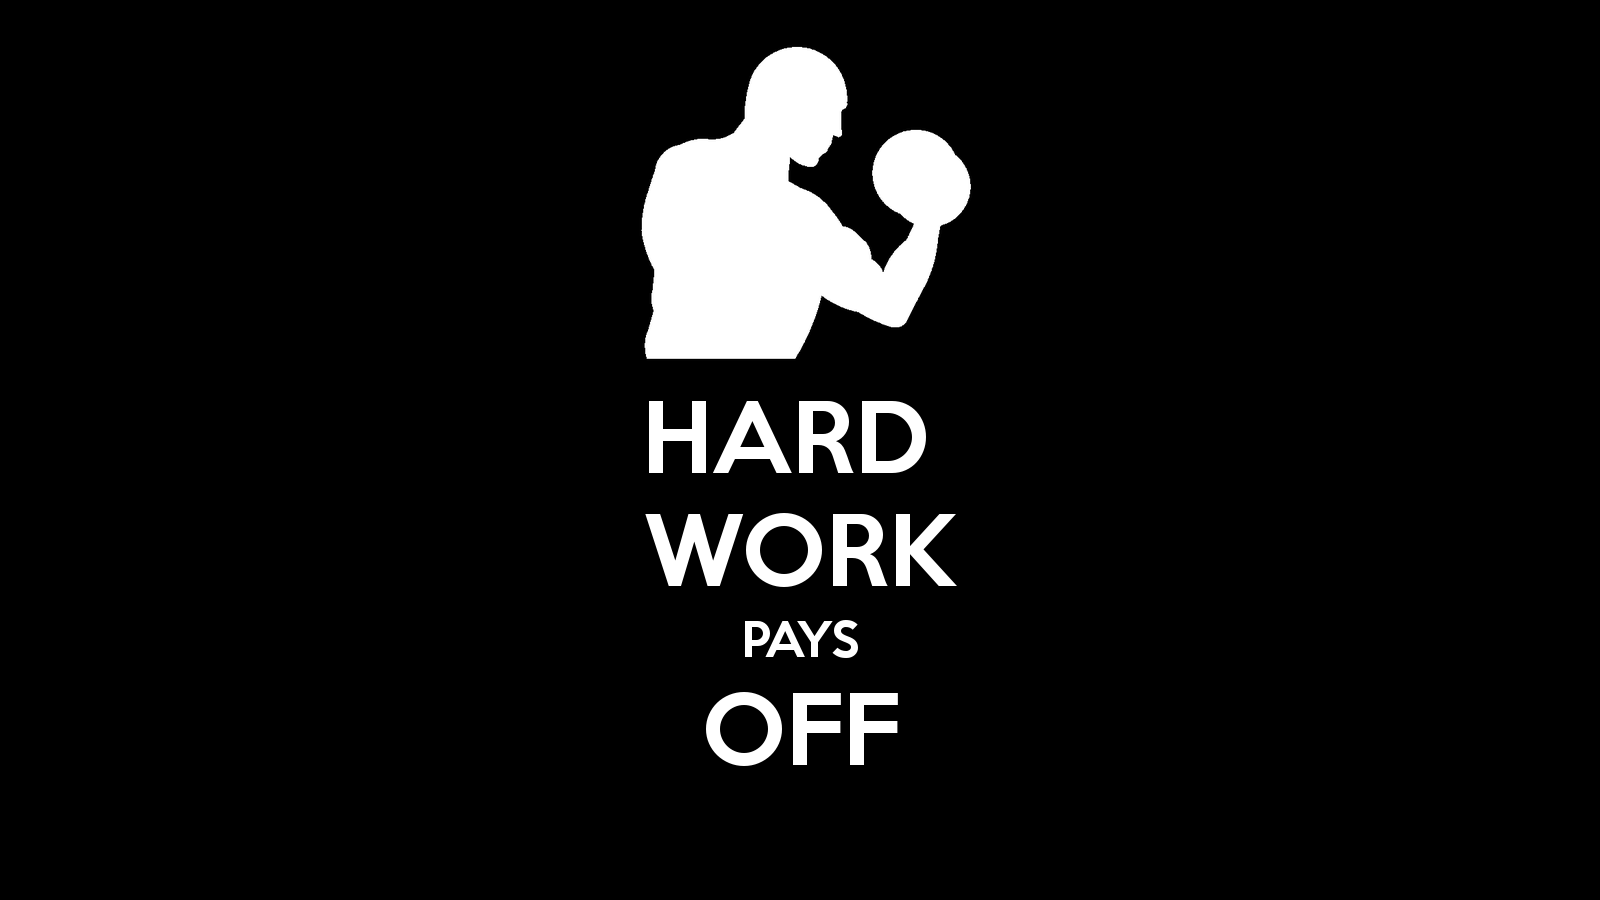 Work Hard Motivational Mobile Wallpaper Quote